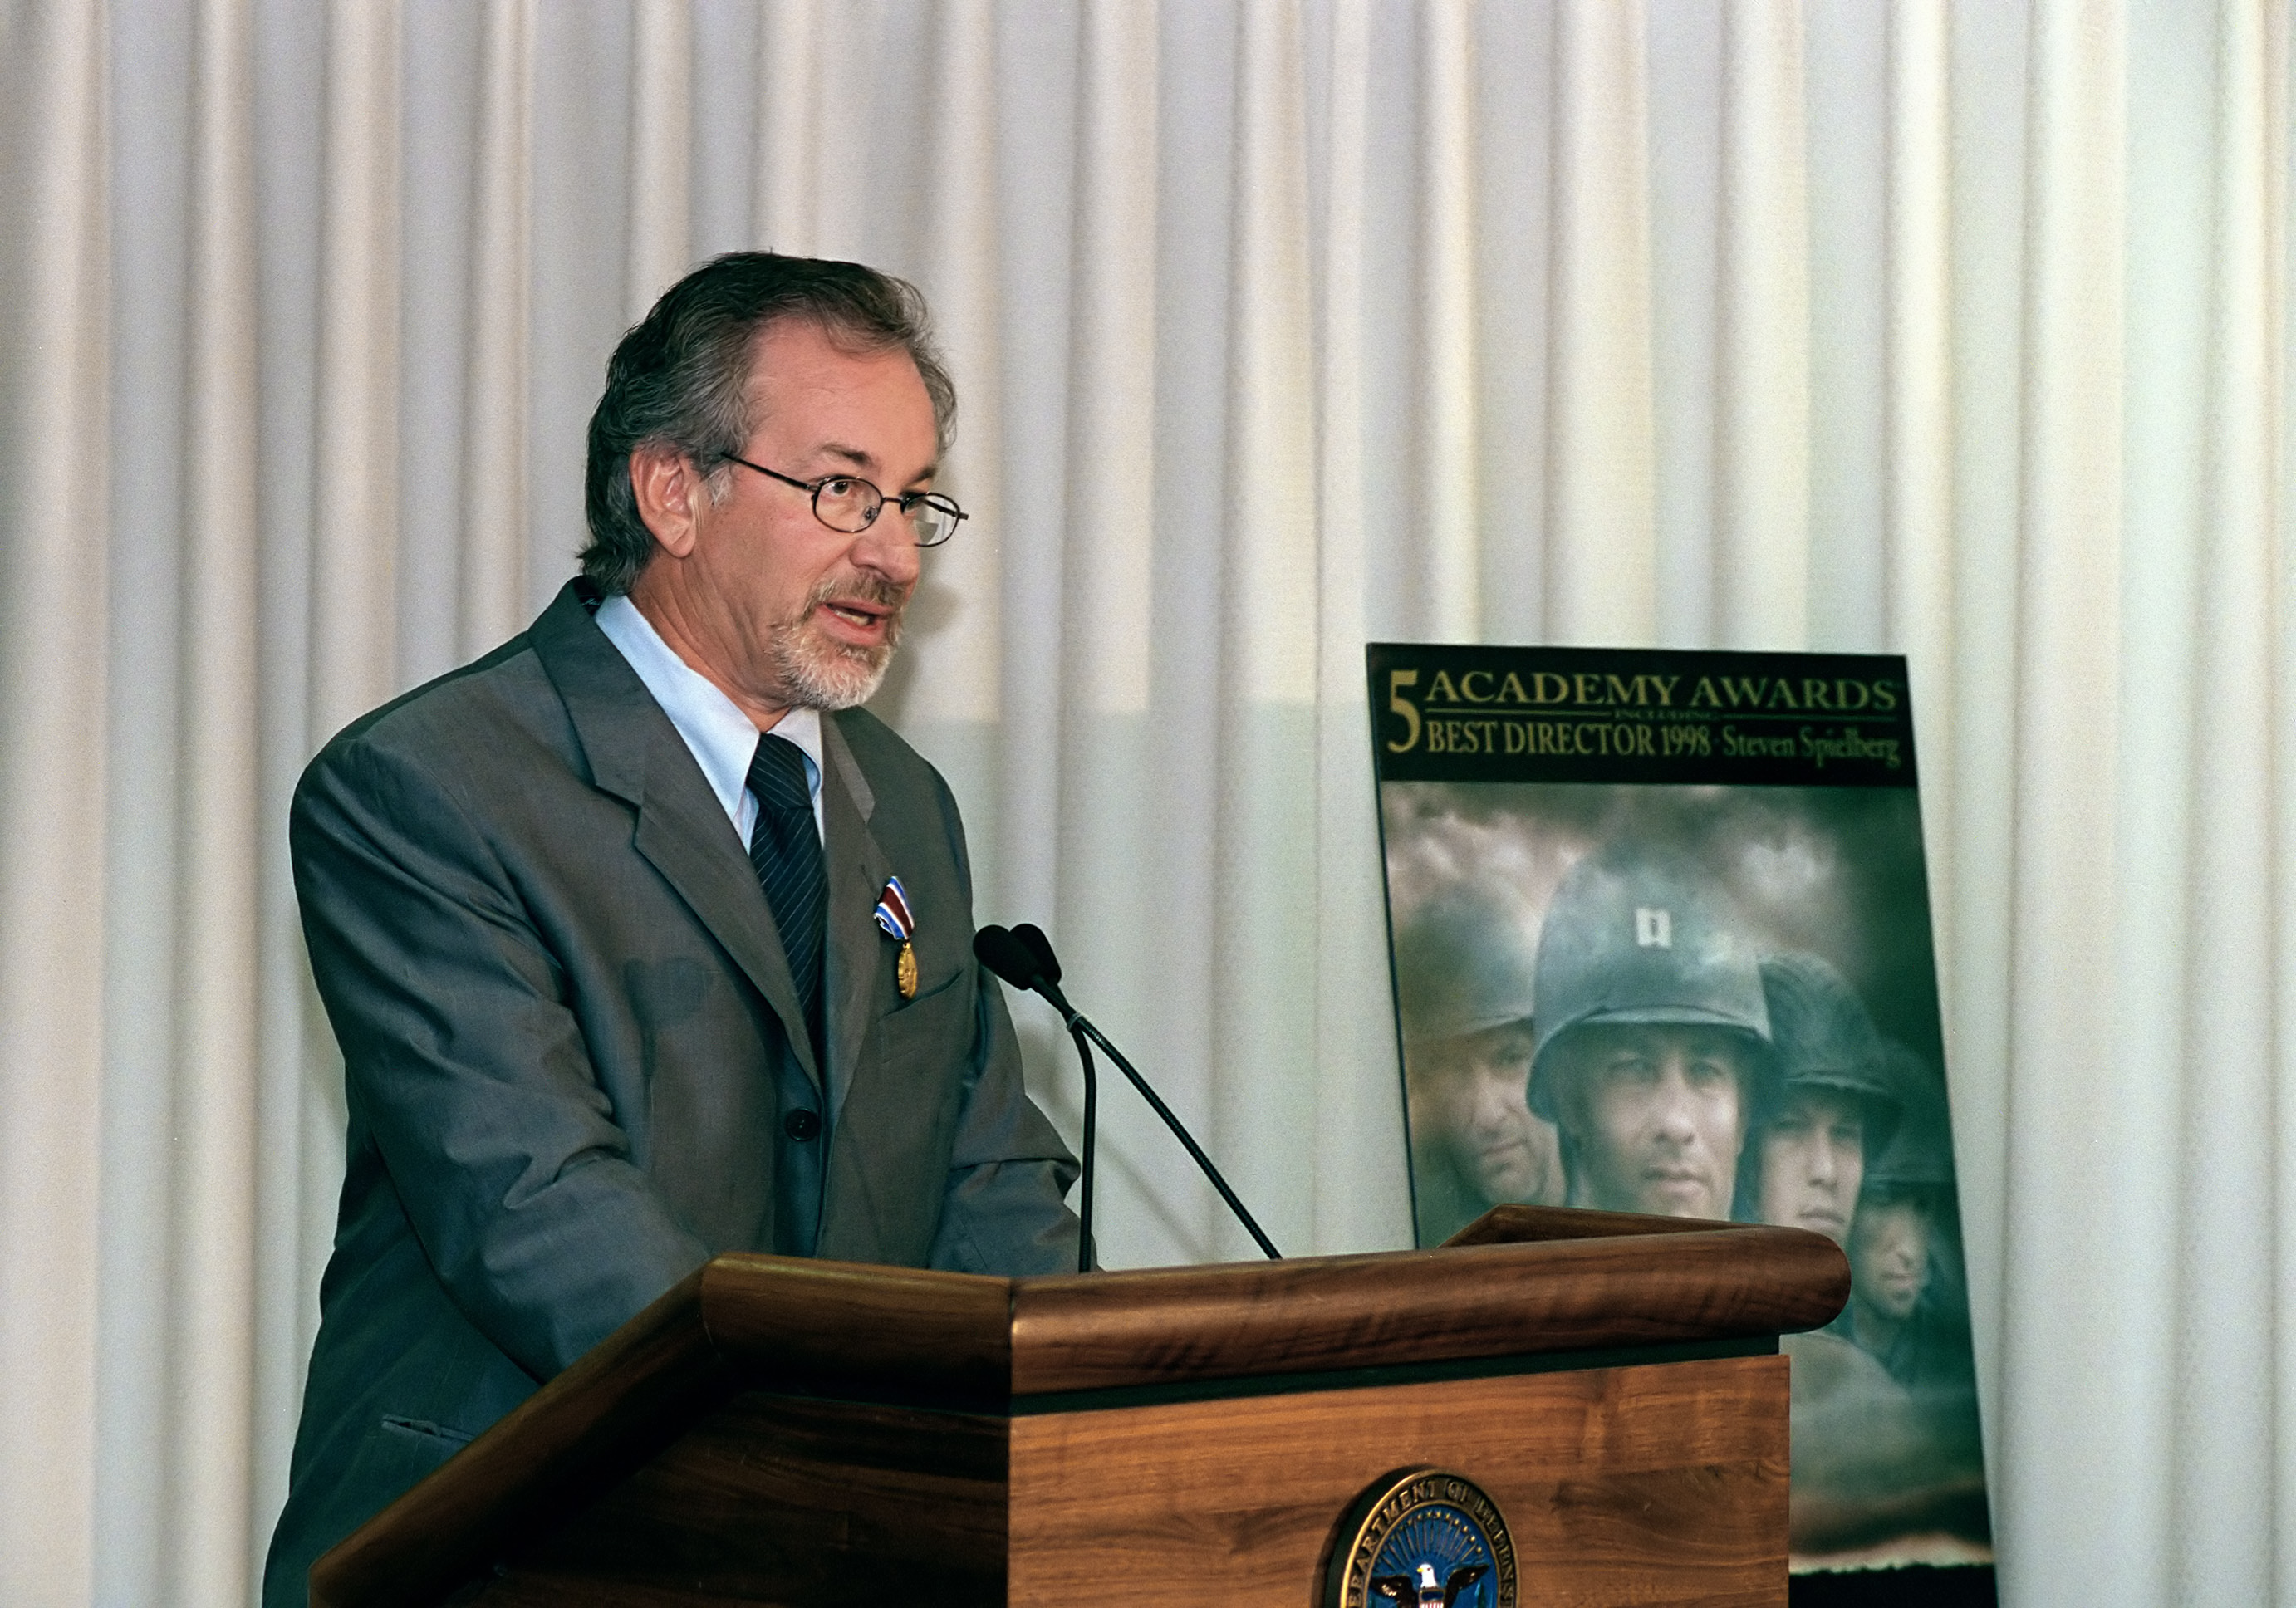 Spielberg speaking at the Pentagon on August 11, 1999 after receiving the Department of Defense Medal for Distinguished Public Service from Secretary of Defense William S. Cohen